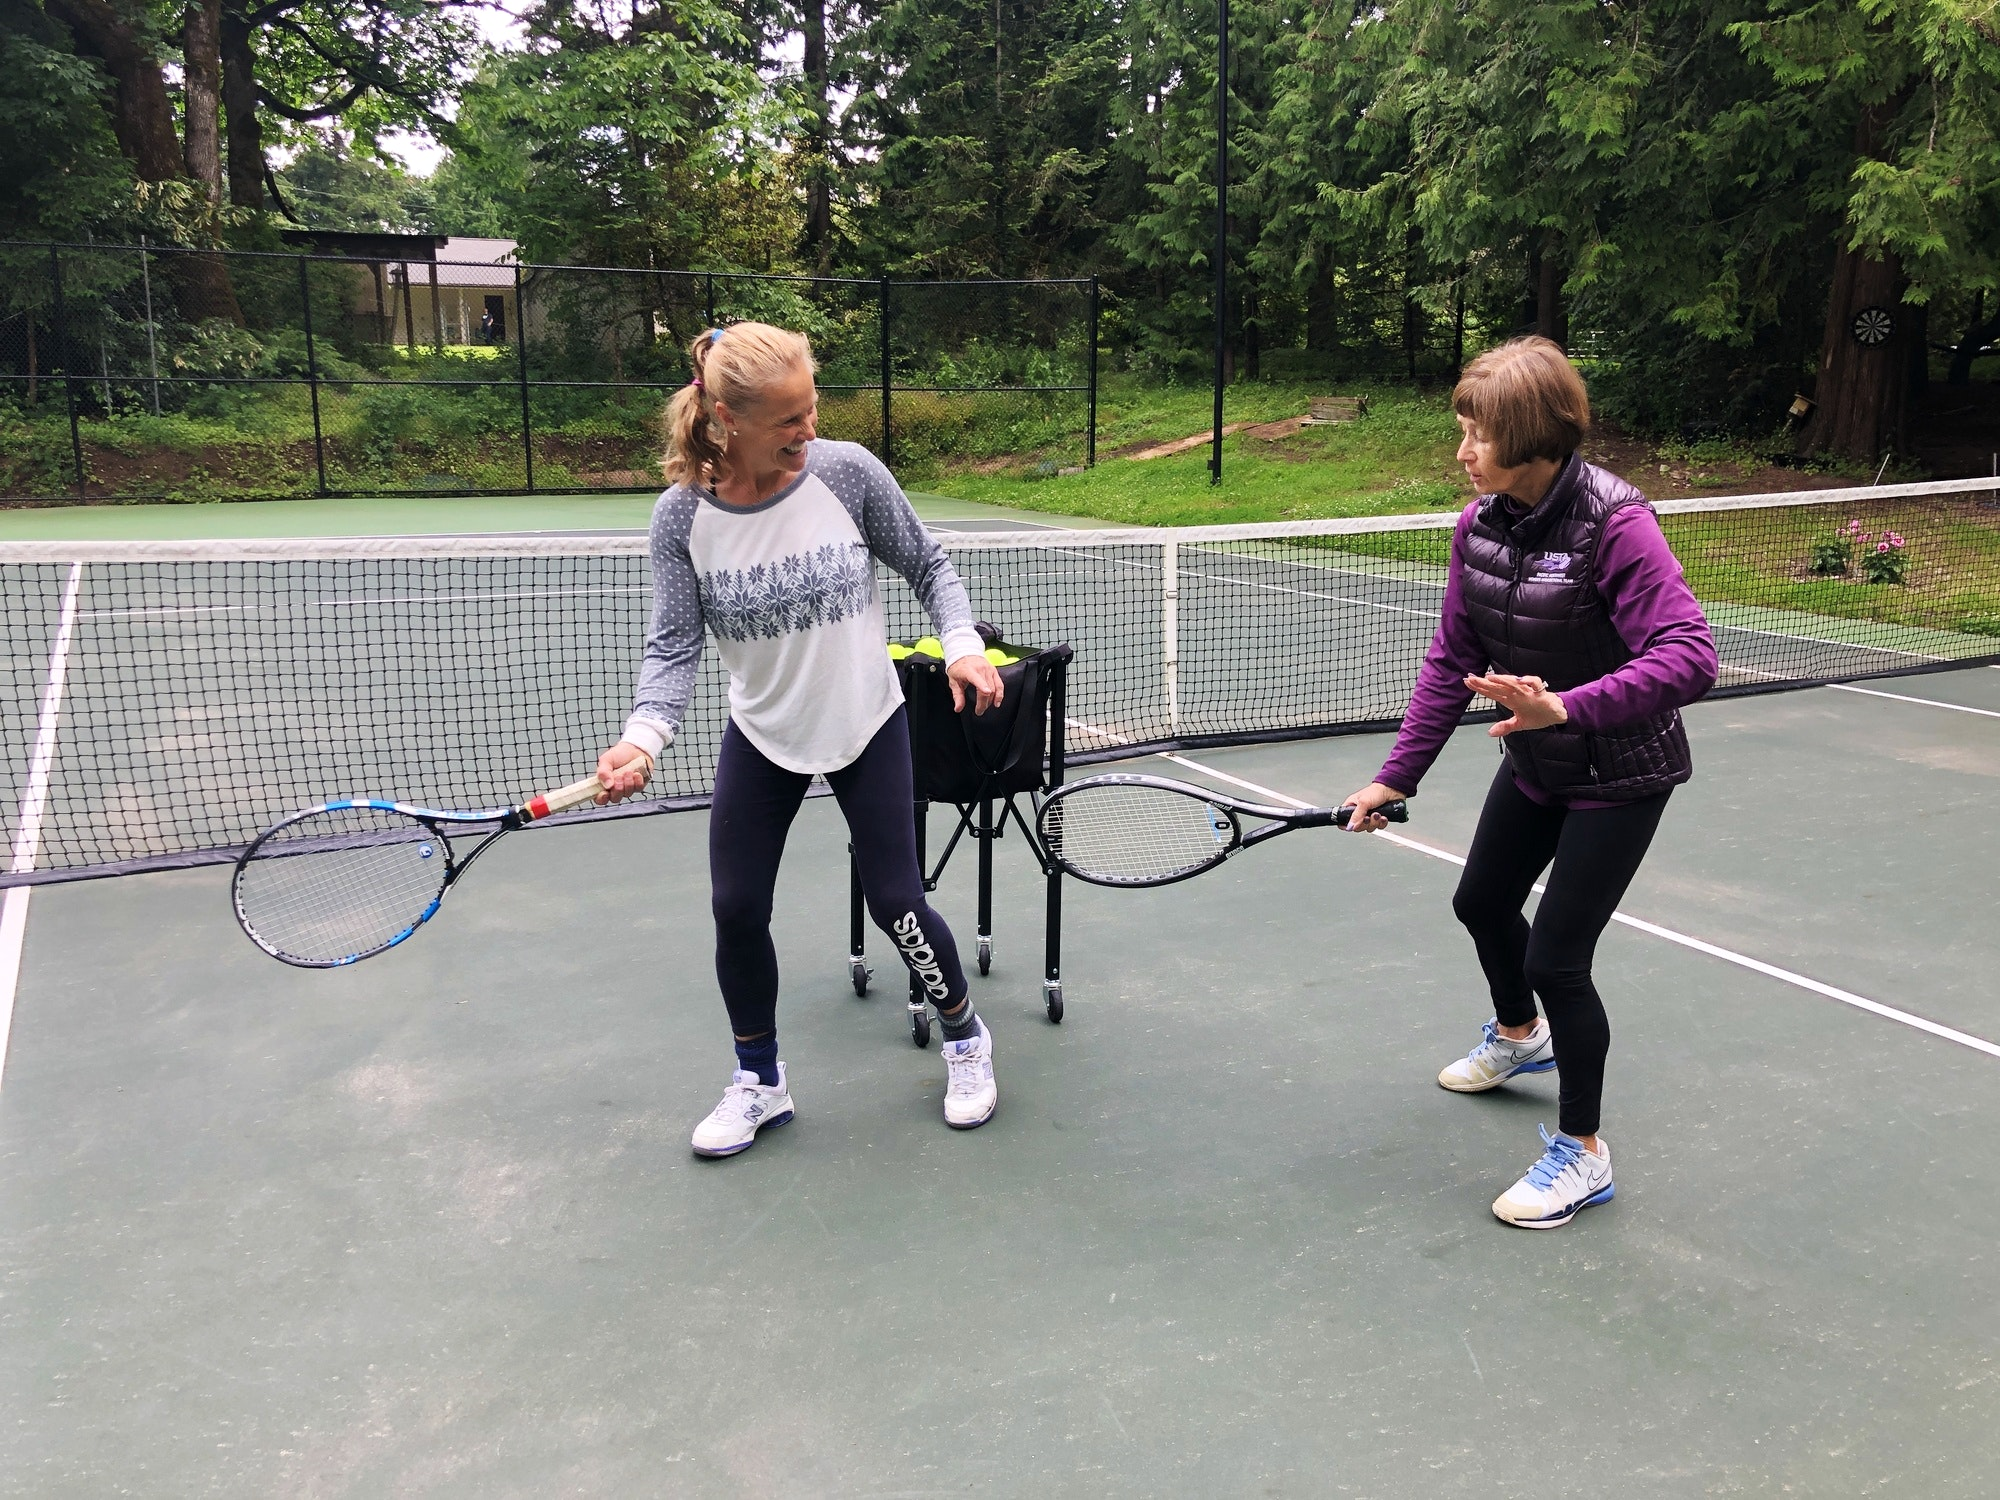 Janet M. teaches tennis lessons in Woodinville, WA